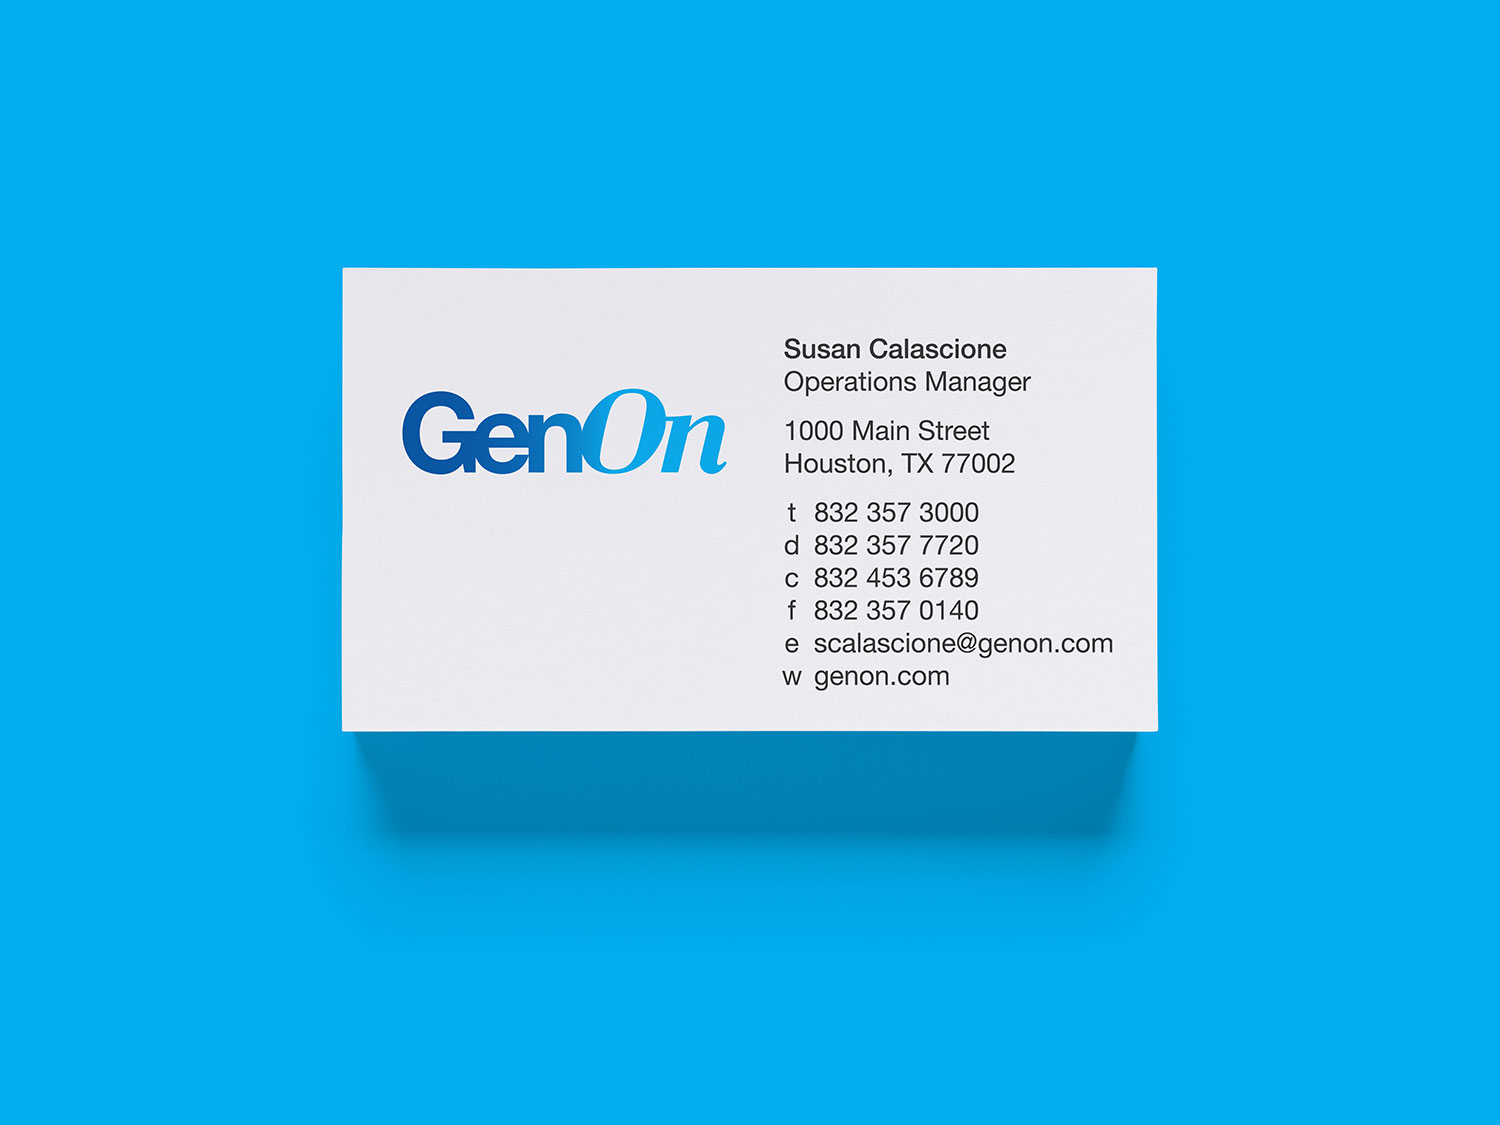 Business card designs for GenOn